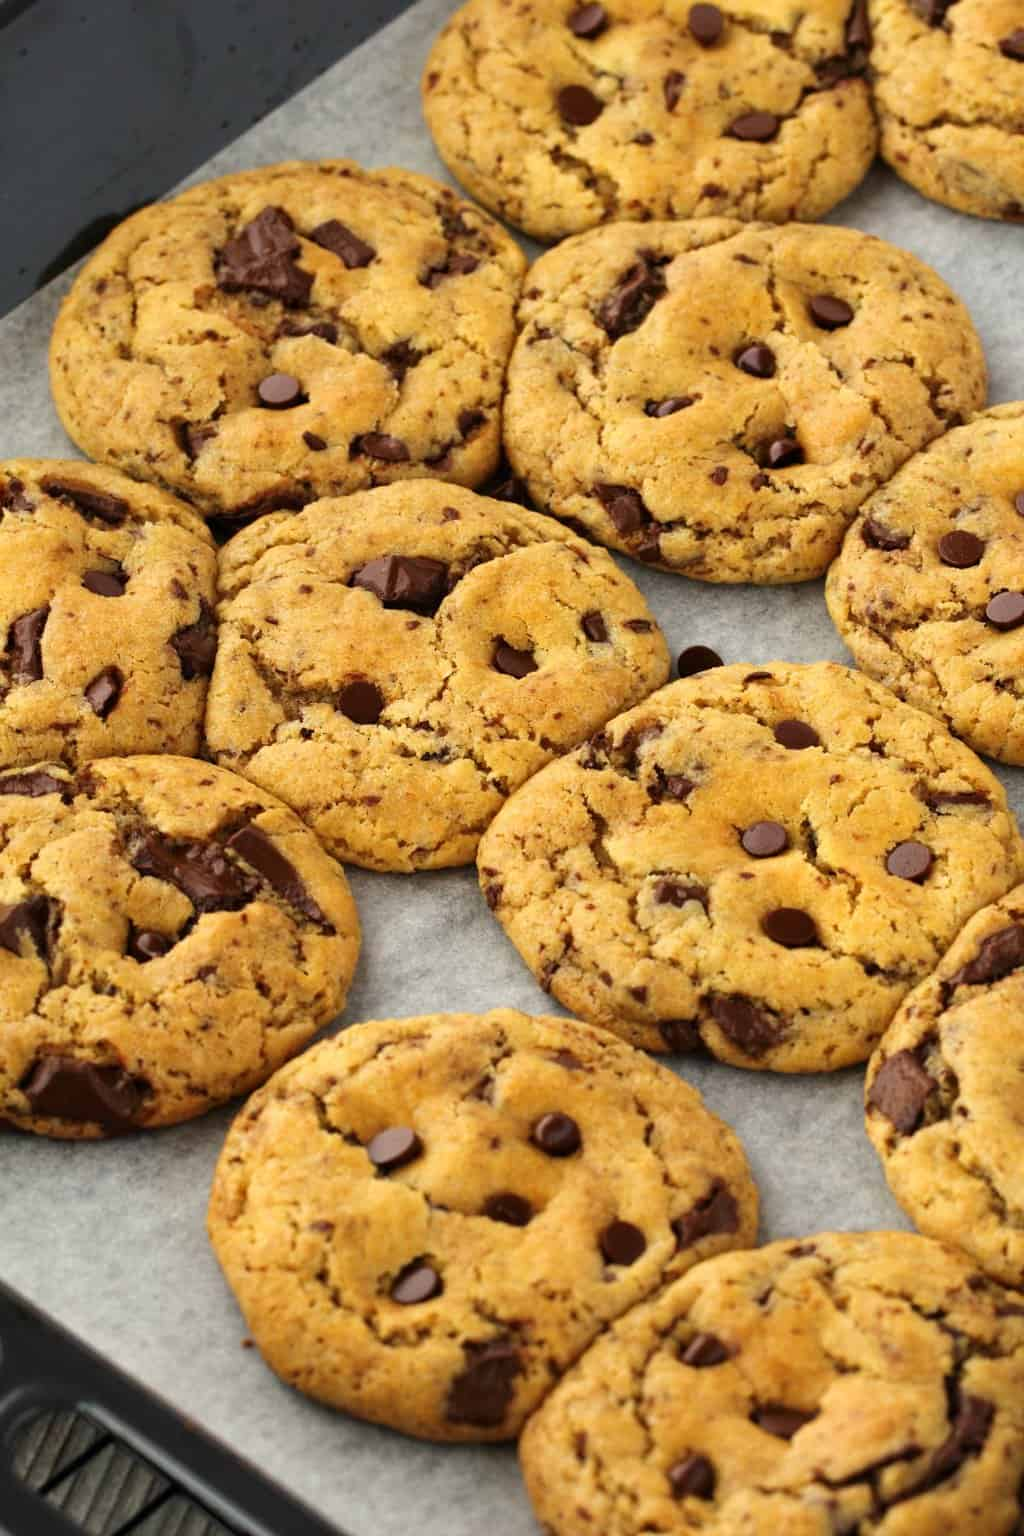 Vegan Chocolate Chip Cookies on a parchment lined baking tray, straight out of the oven.